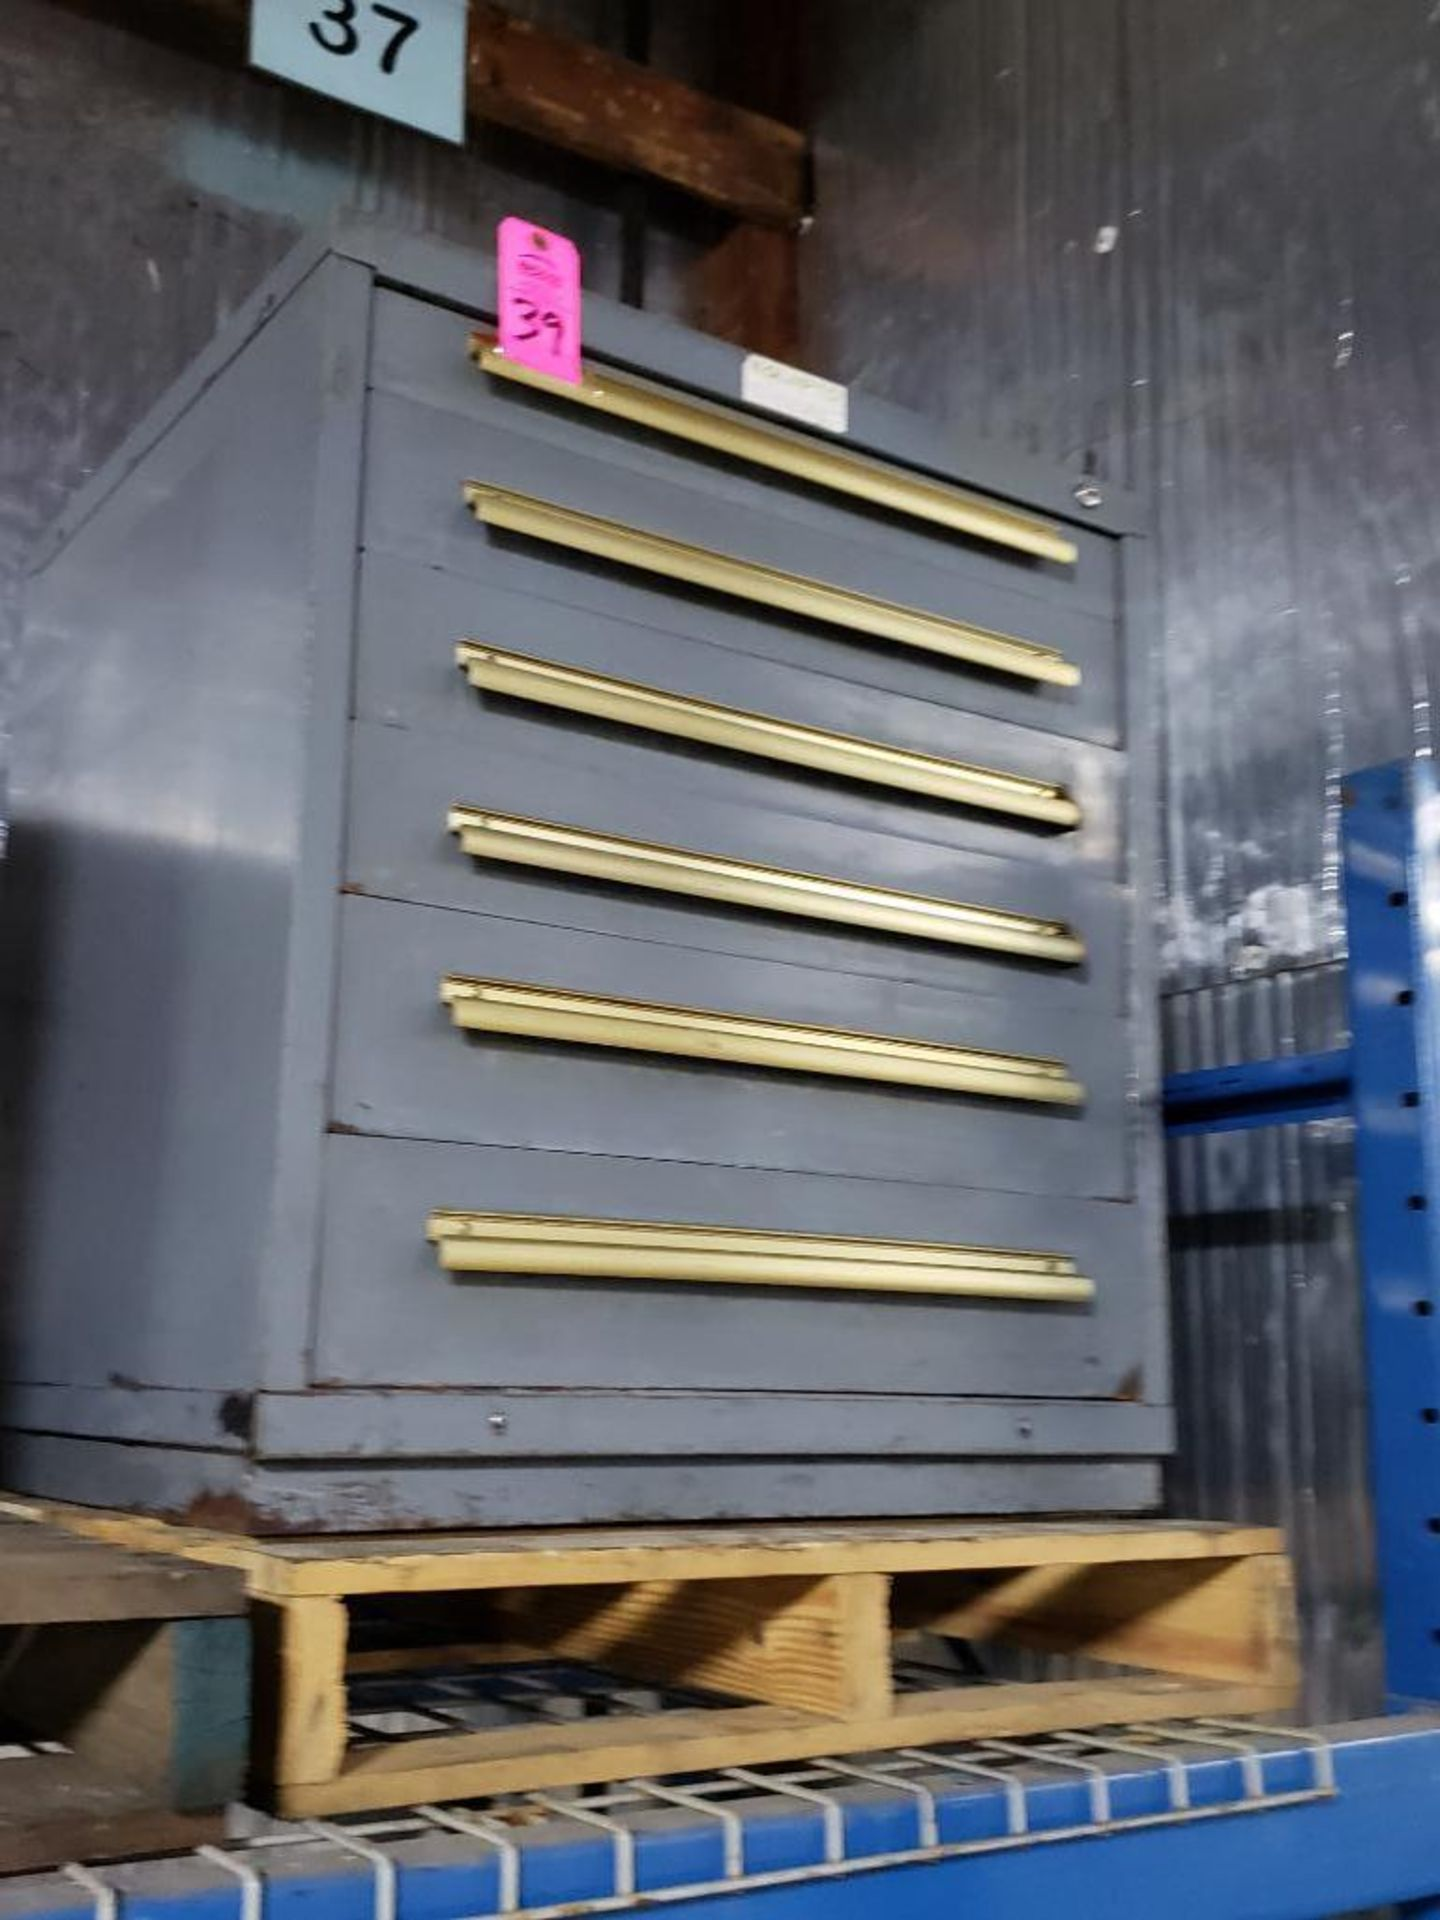 Lot 39 - 6 drawer Equipto tool cabinet. Overall dimensions 34Tx30Wx28D.